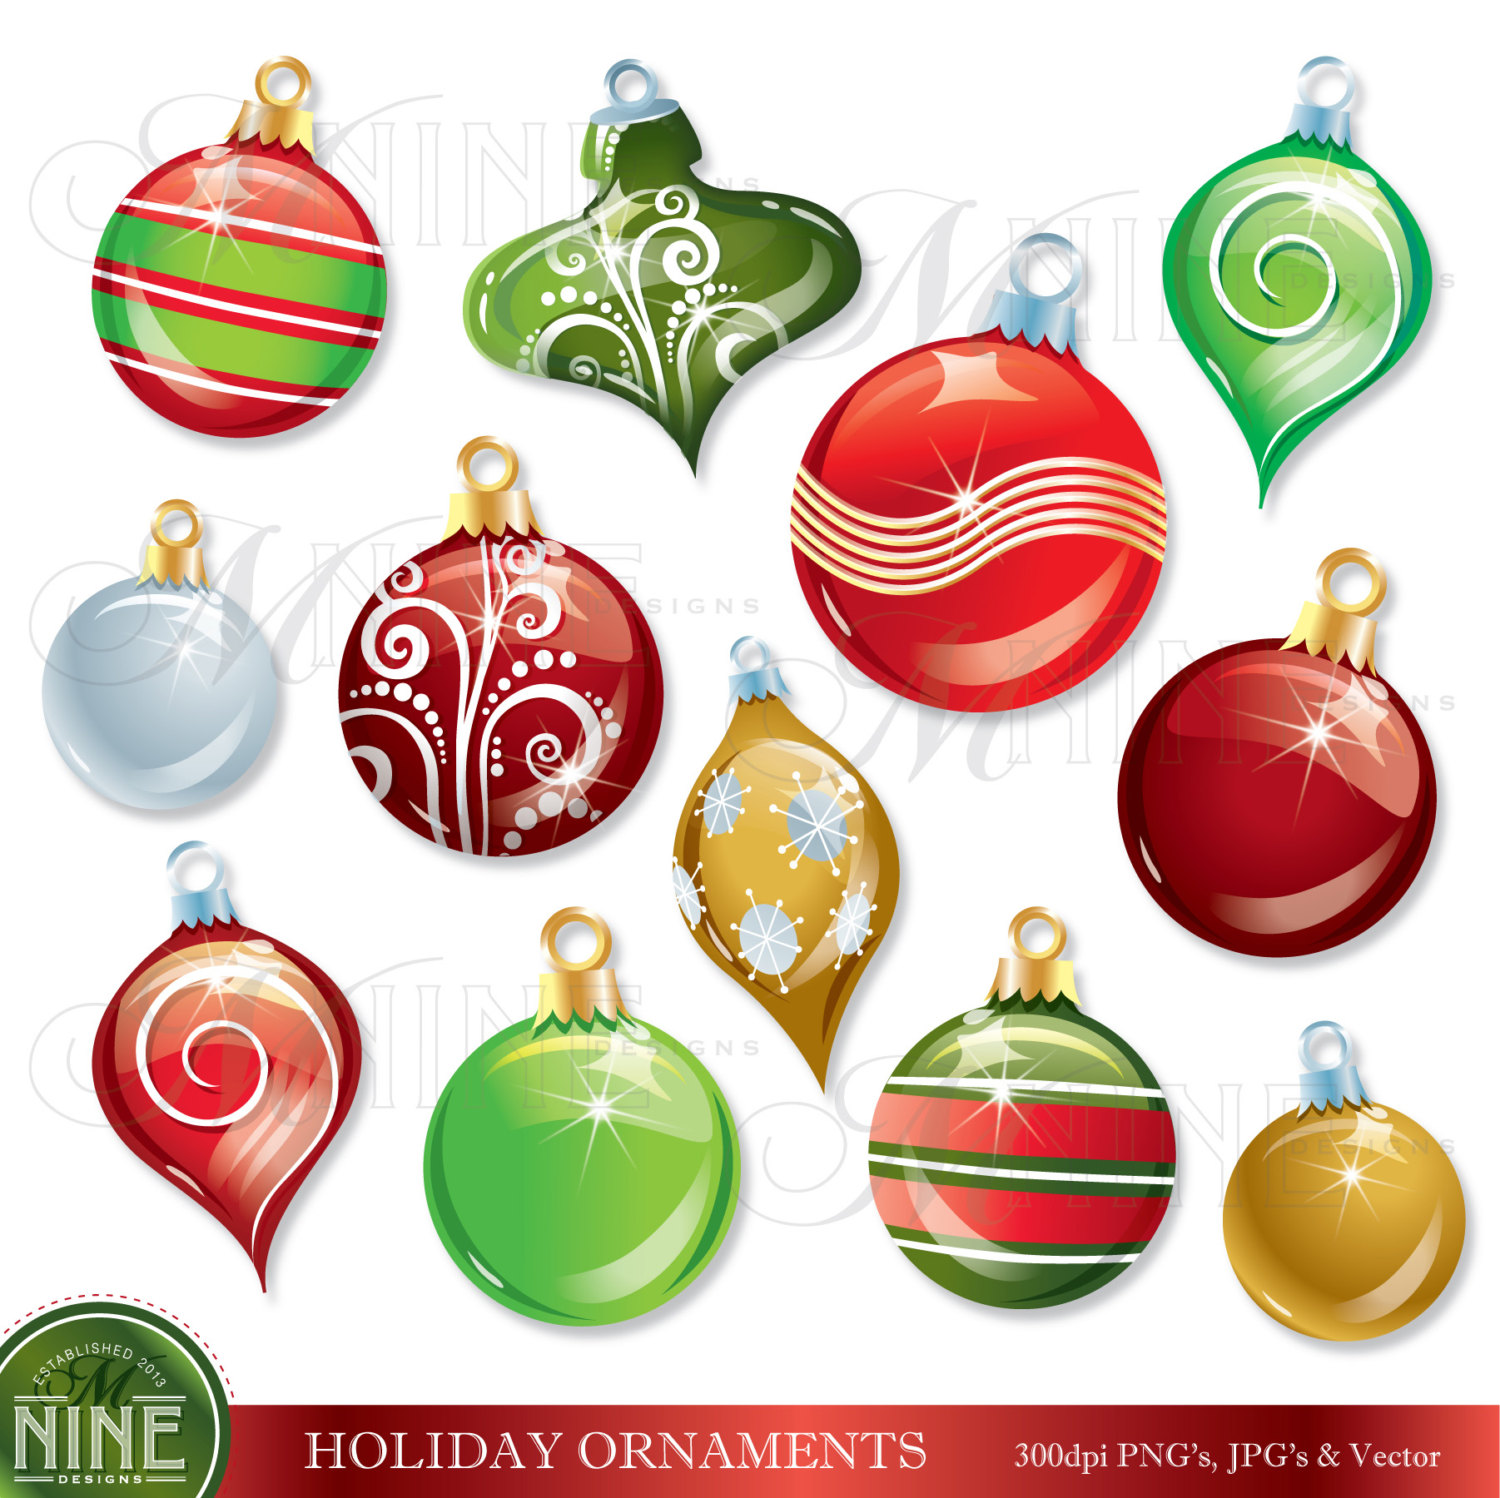 CHRISTMAS ORNAMENTS Clip Art: HOLIDAY Clipart, Instant Download, Ornament Vector Art Icons Graphics